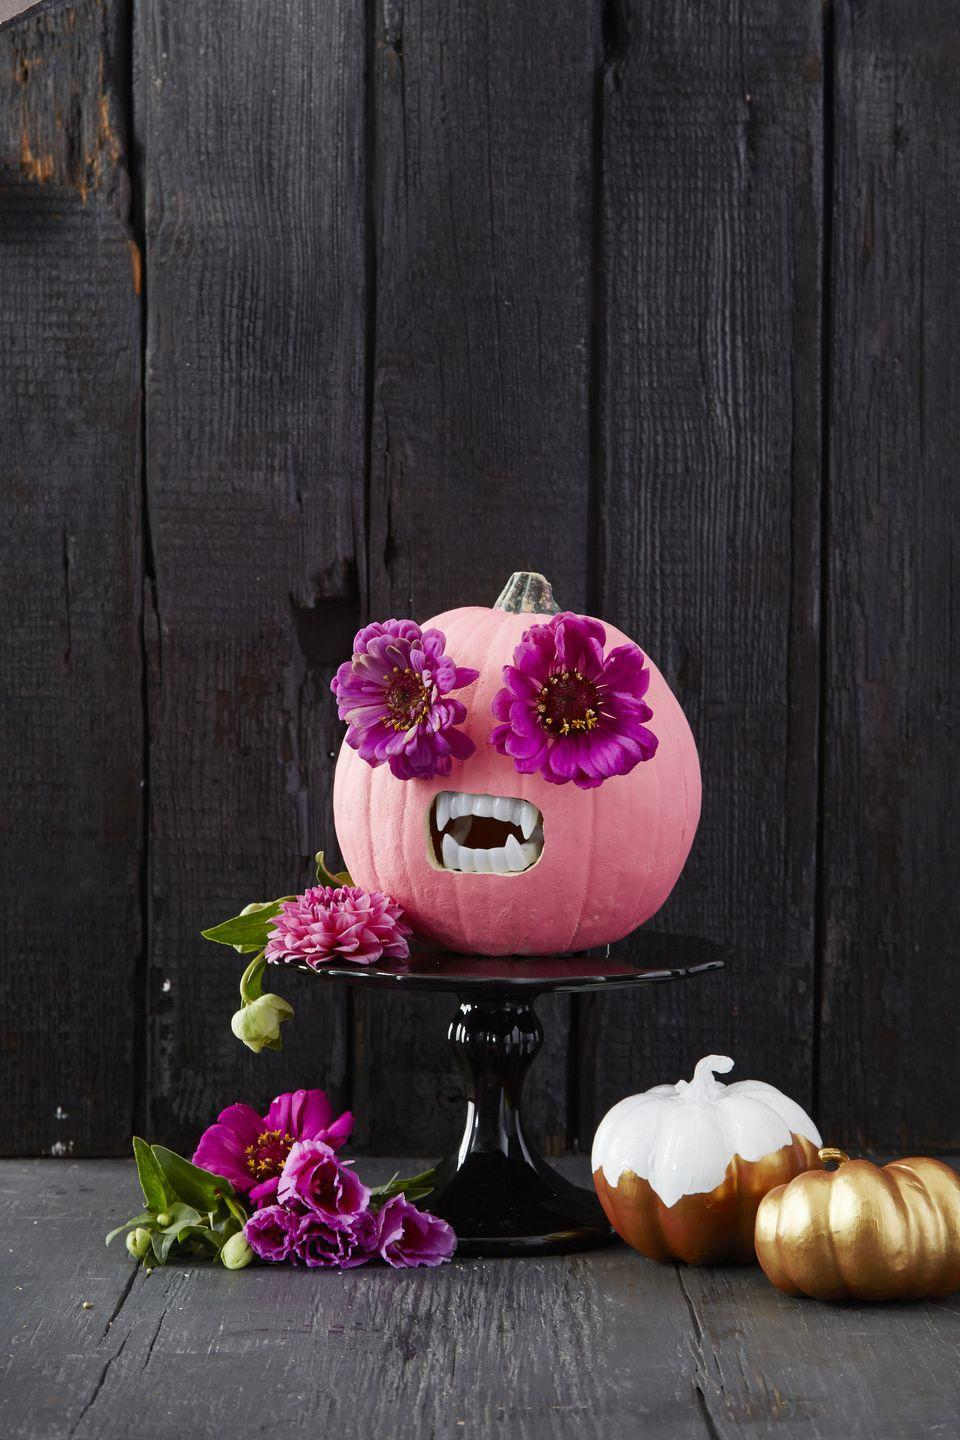 """<p>This idea is perfect the family that wants to make a big statement without spending a ton of time creating their design. All you have to do is paint your pumpkin bright pink (or any color you'd like). Then, just make holes for the eyes and mouth, and pop in some giant faux flowers and scary fake teeth! </p><p><a class=""""link rapid-noclick-resp"""" href=""""https://www.amazon.com/Fun-Express-Plastic-Halloween-Vampire/dp/B005MRN04E/?tag=syn-yahoo-20&ascsubtag=%5Bartid%7C10055.g.238%5Bsrc%7Cyahoo-us"""" rel=""""nofollow noopener"""" target=""""_blank"""" data-ylk=""""slk:SHOP FAKE TEETH"""">SHOP FAKE TEETH</a></p>"""